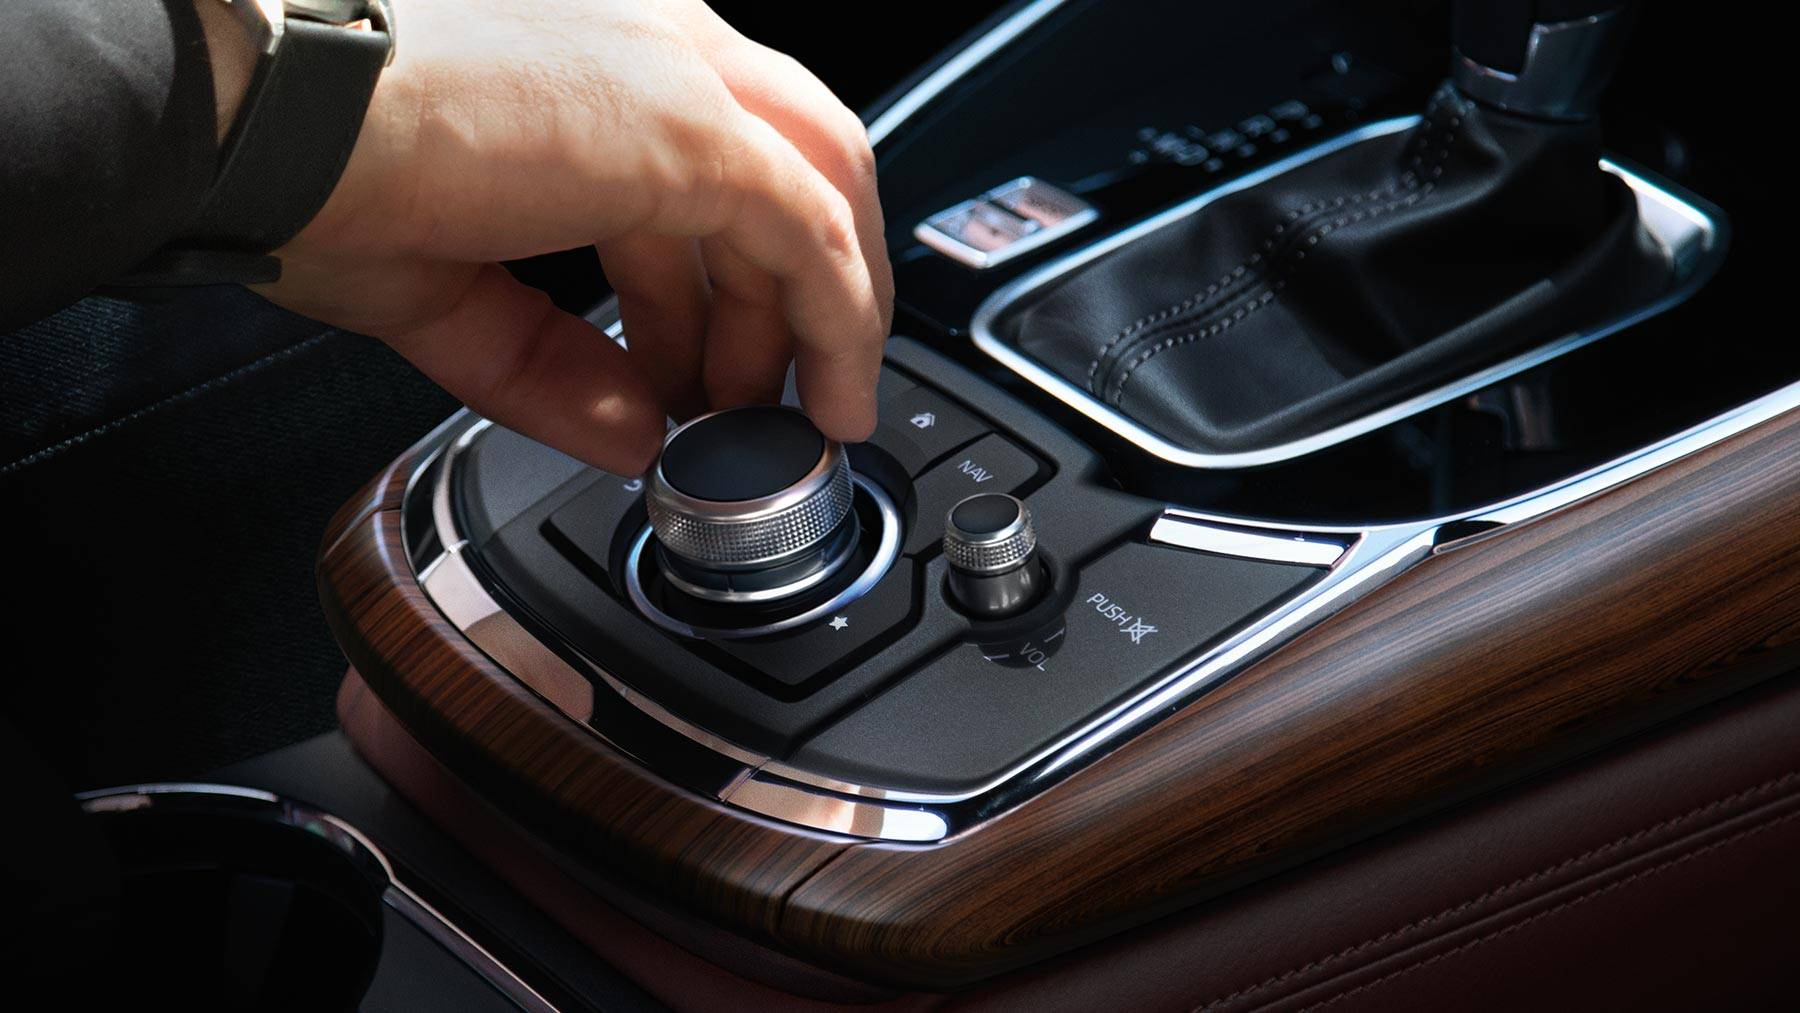 Toggle Between Your Media Easily in the Mazda CX-9!